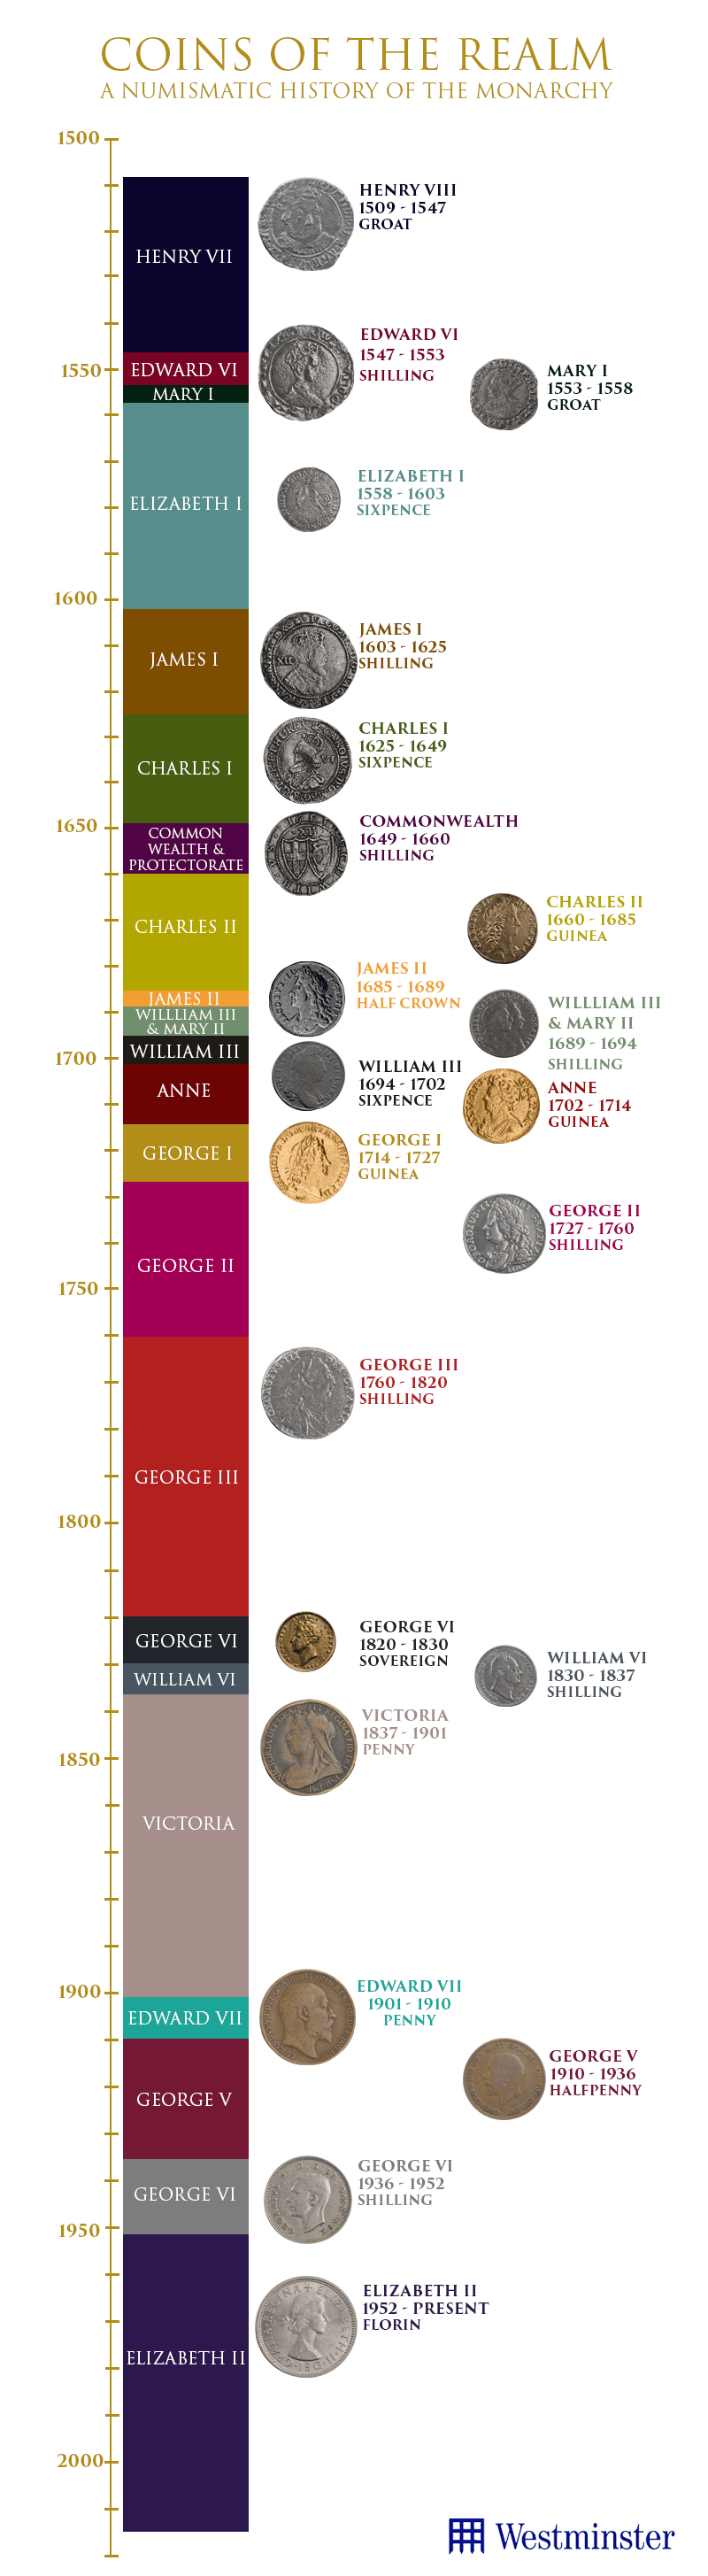 new coins of the realm version 22 1 - Coins of the Realm Timeline